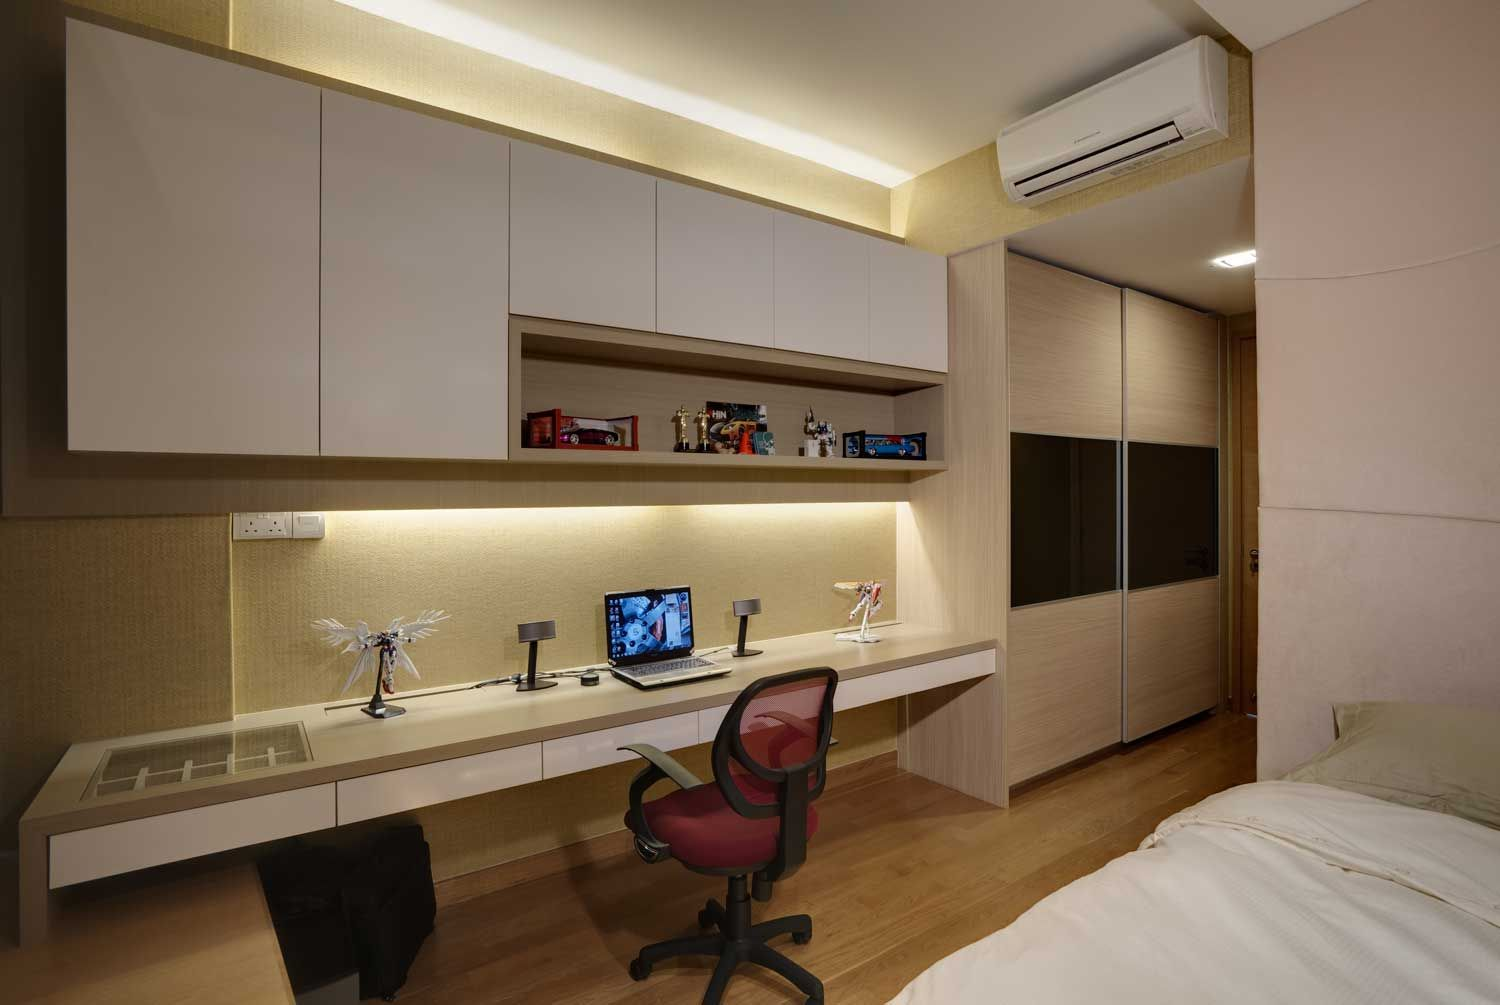 Singapore modern study room design google search for Study room wall cabinets